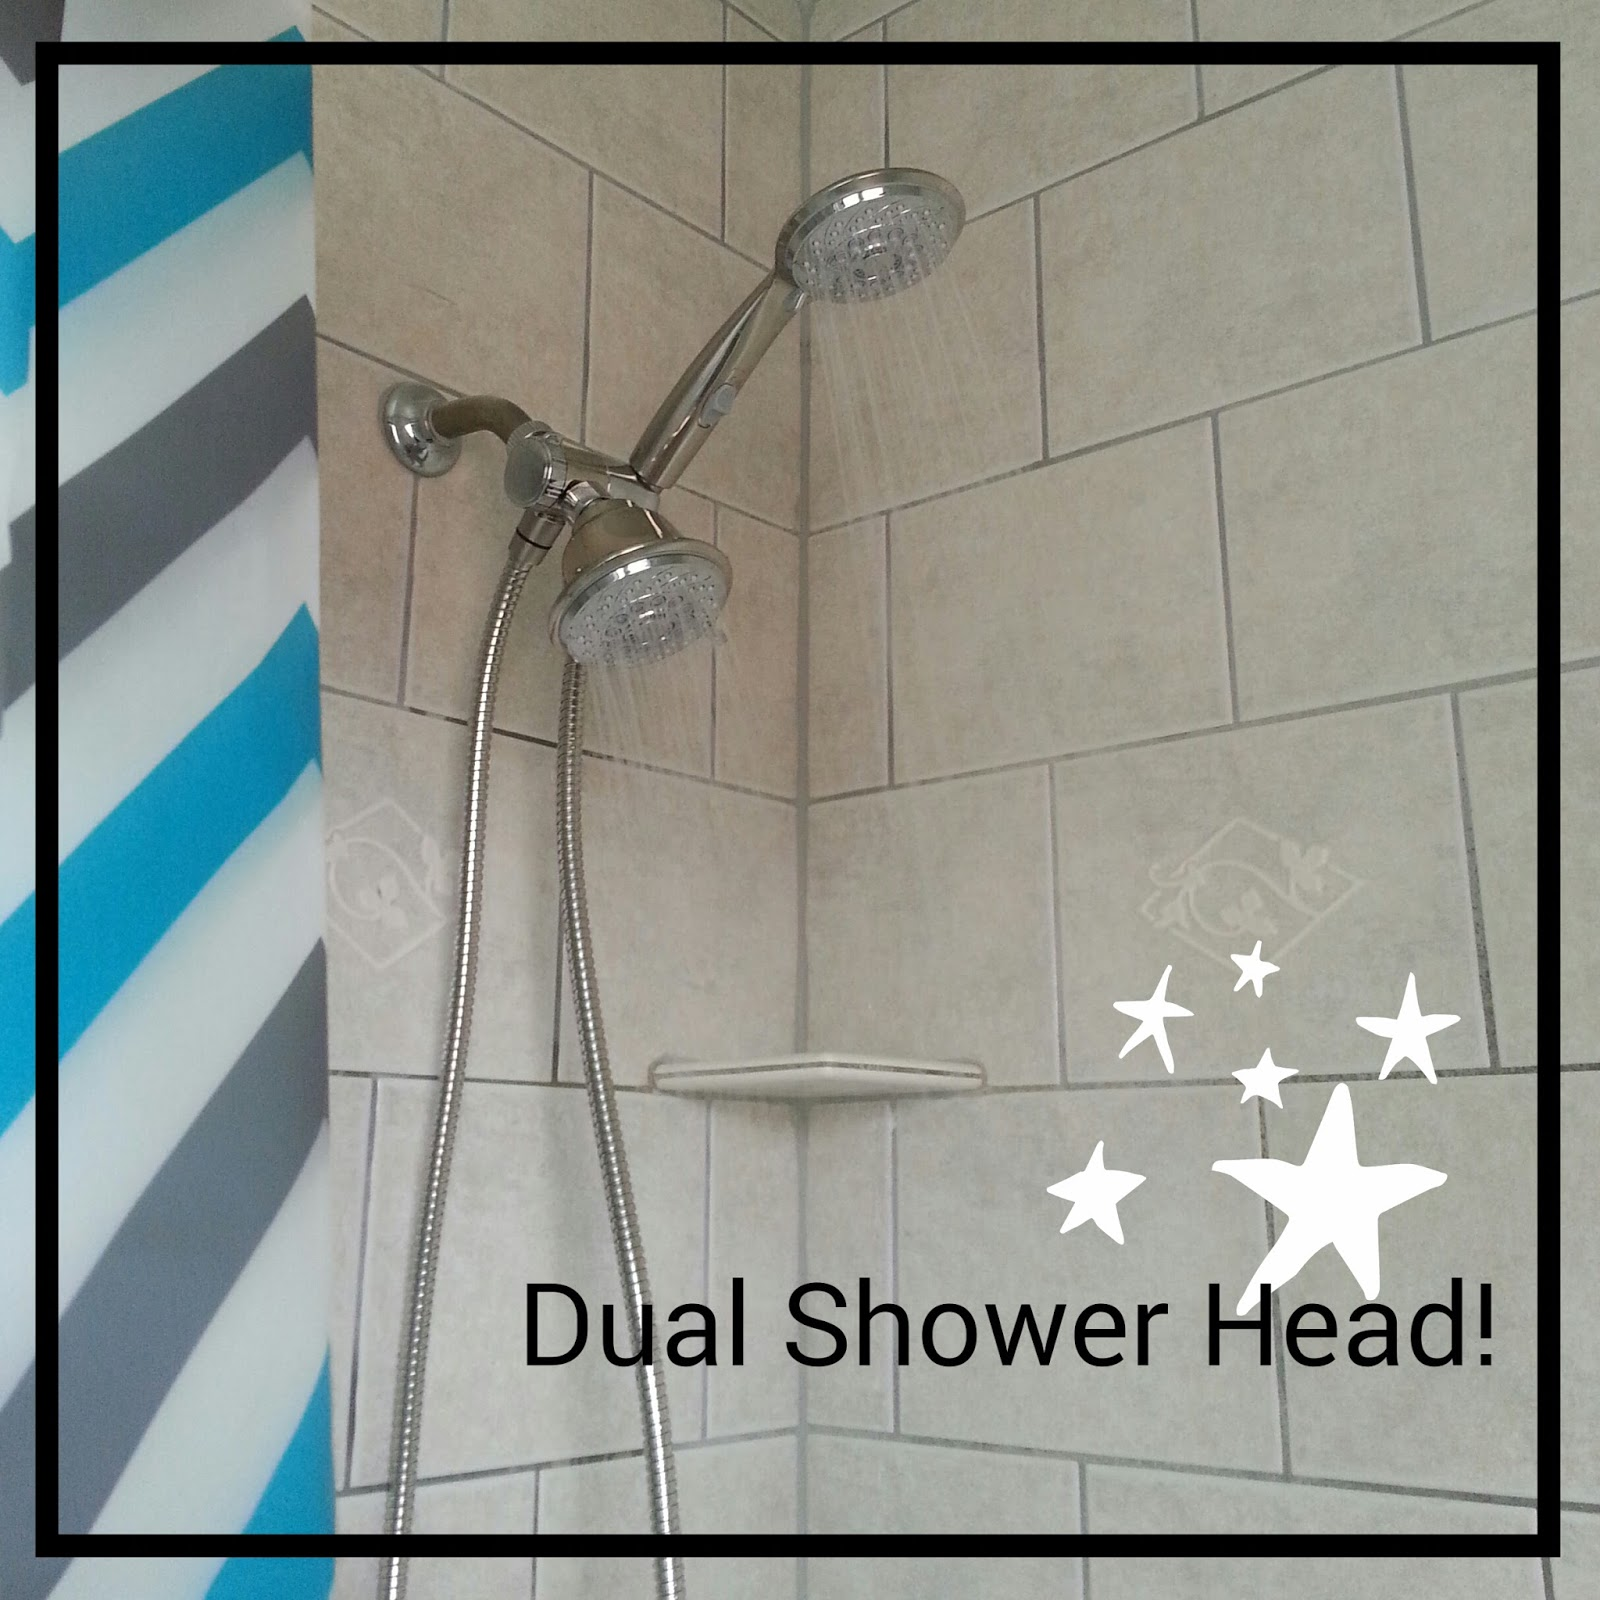 Doodlecraft: Luxurious Dual Shower Head!